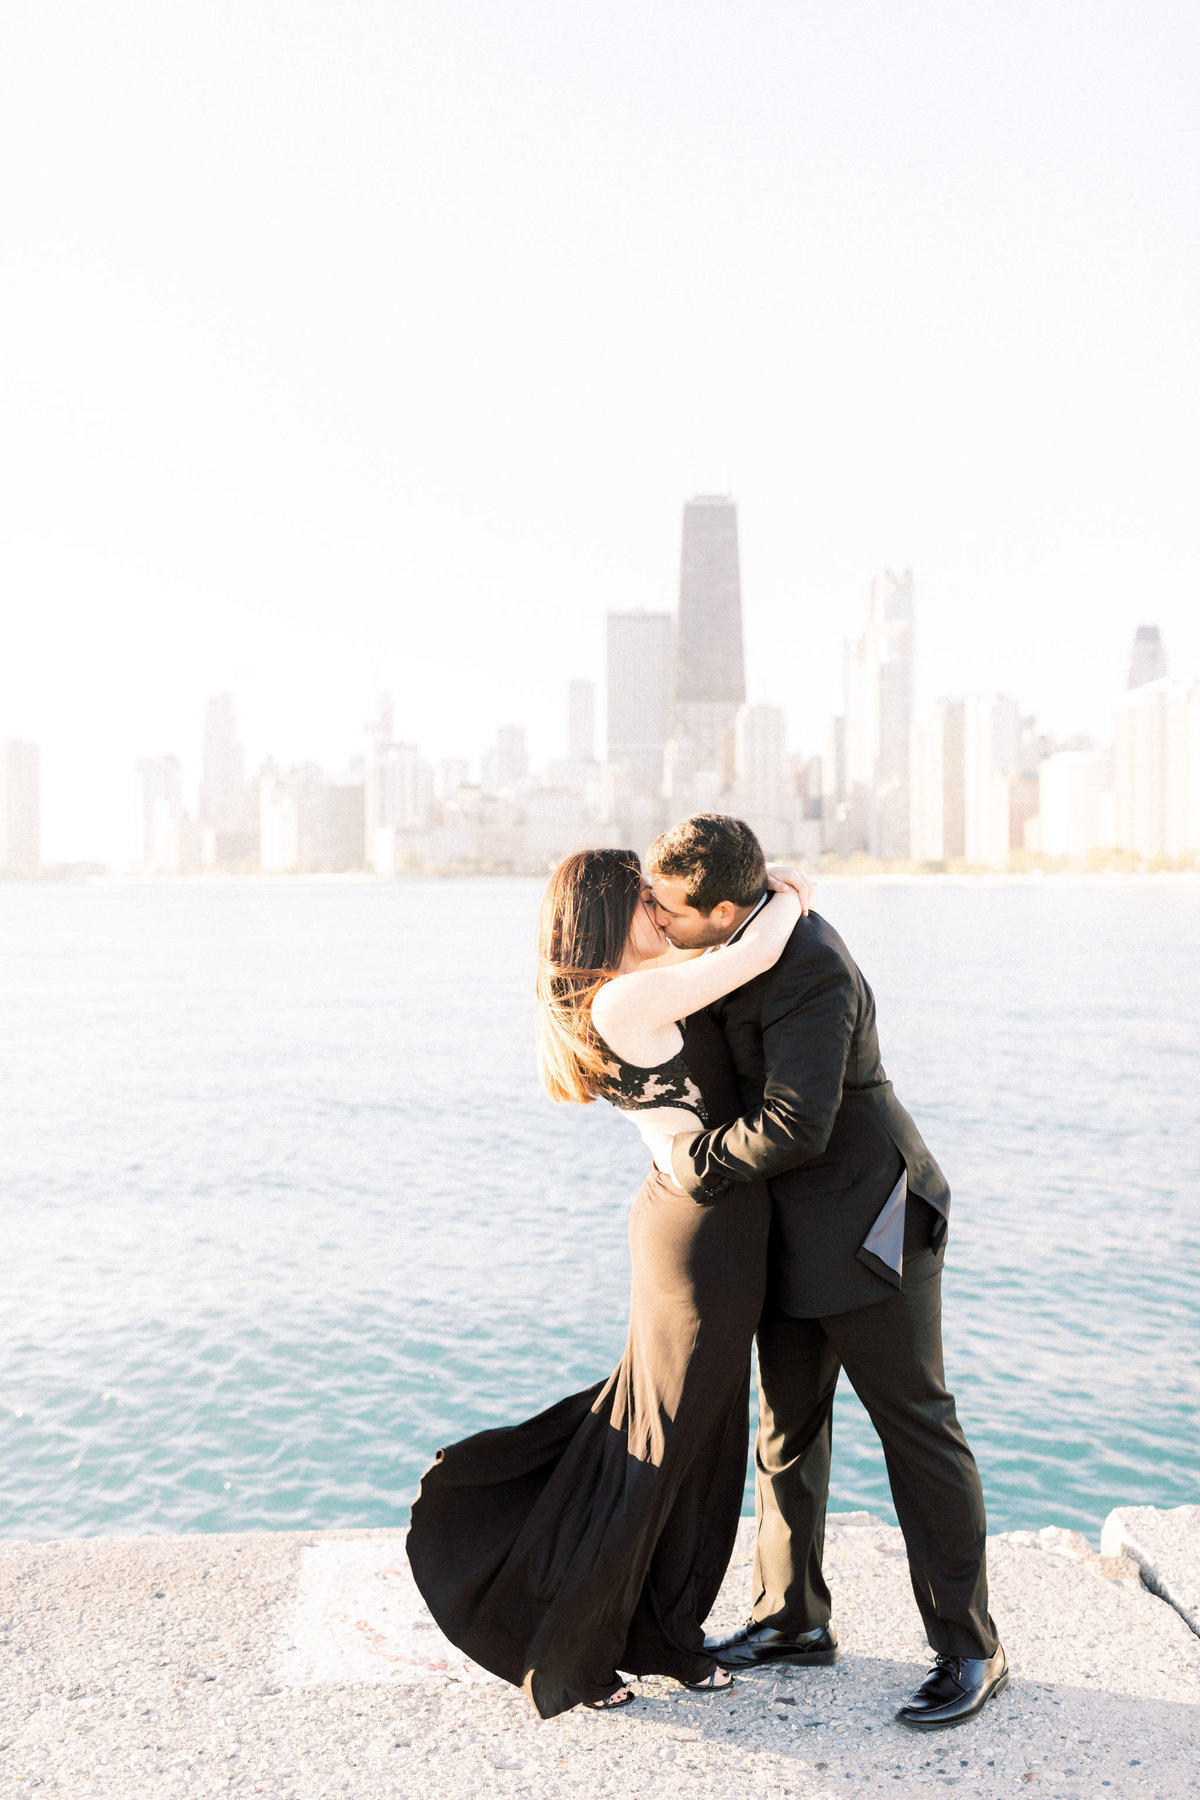 TiffaneyChildsPhotography-ChicagoWeddingPhotographer-Alana+Giancarlo-NorthAvenueBeachUnionStationEngagementSession-28